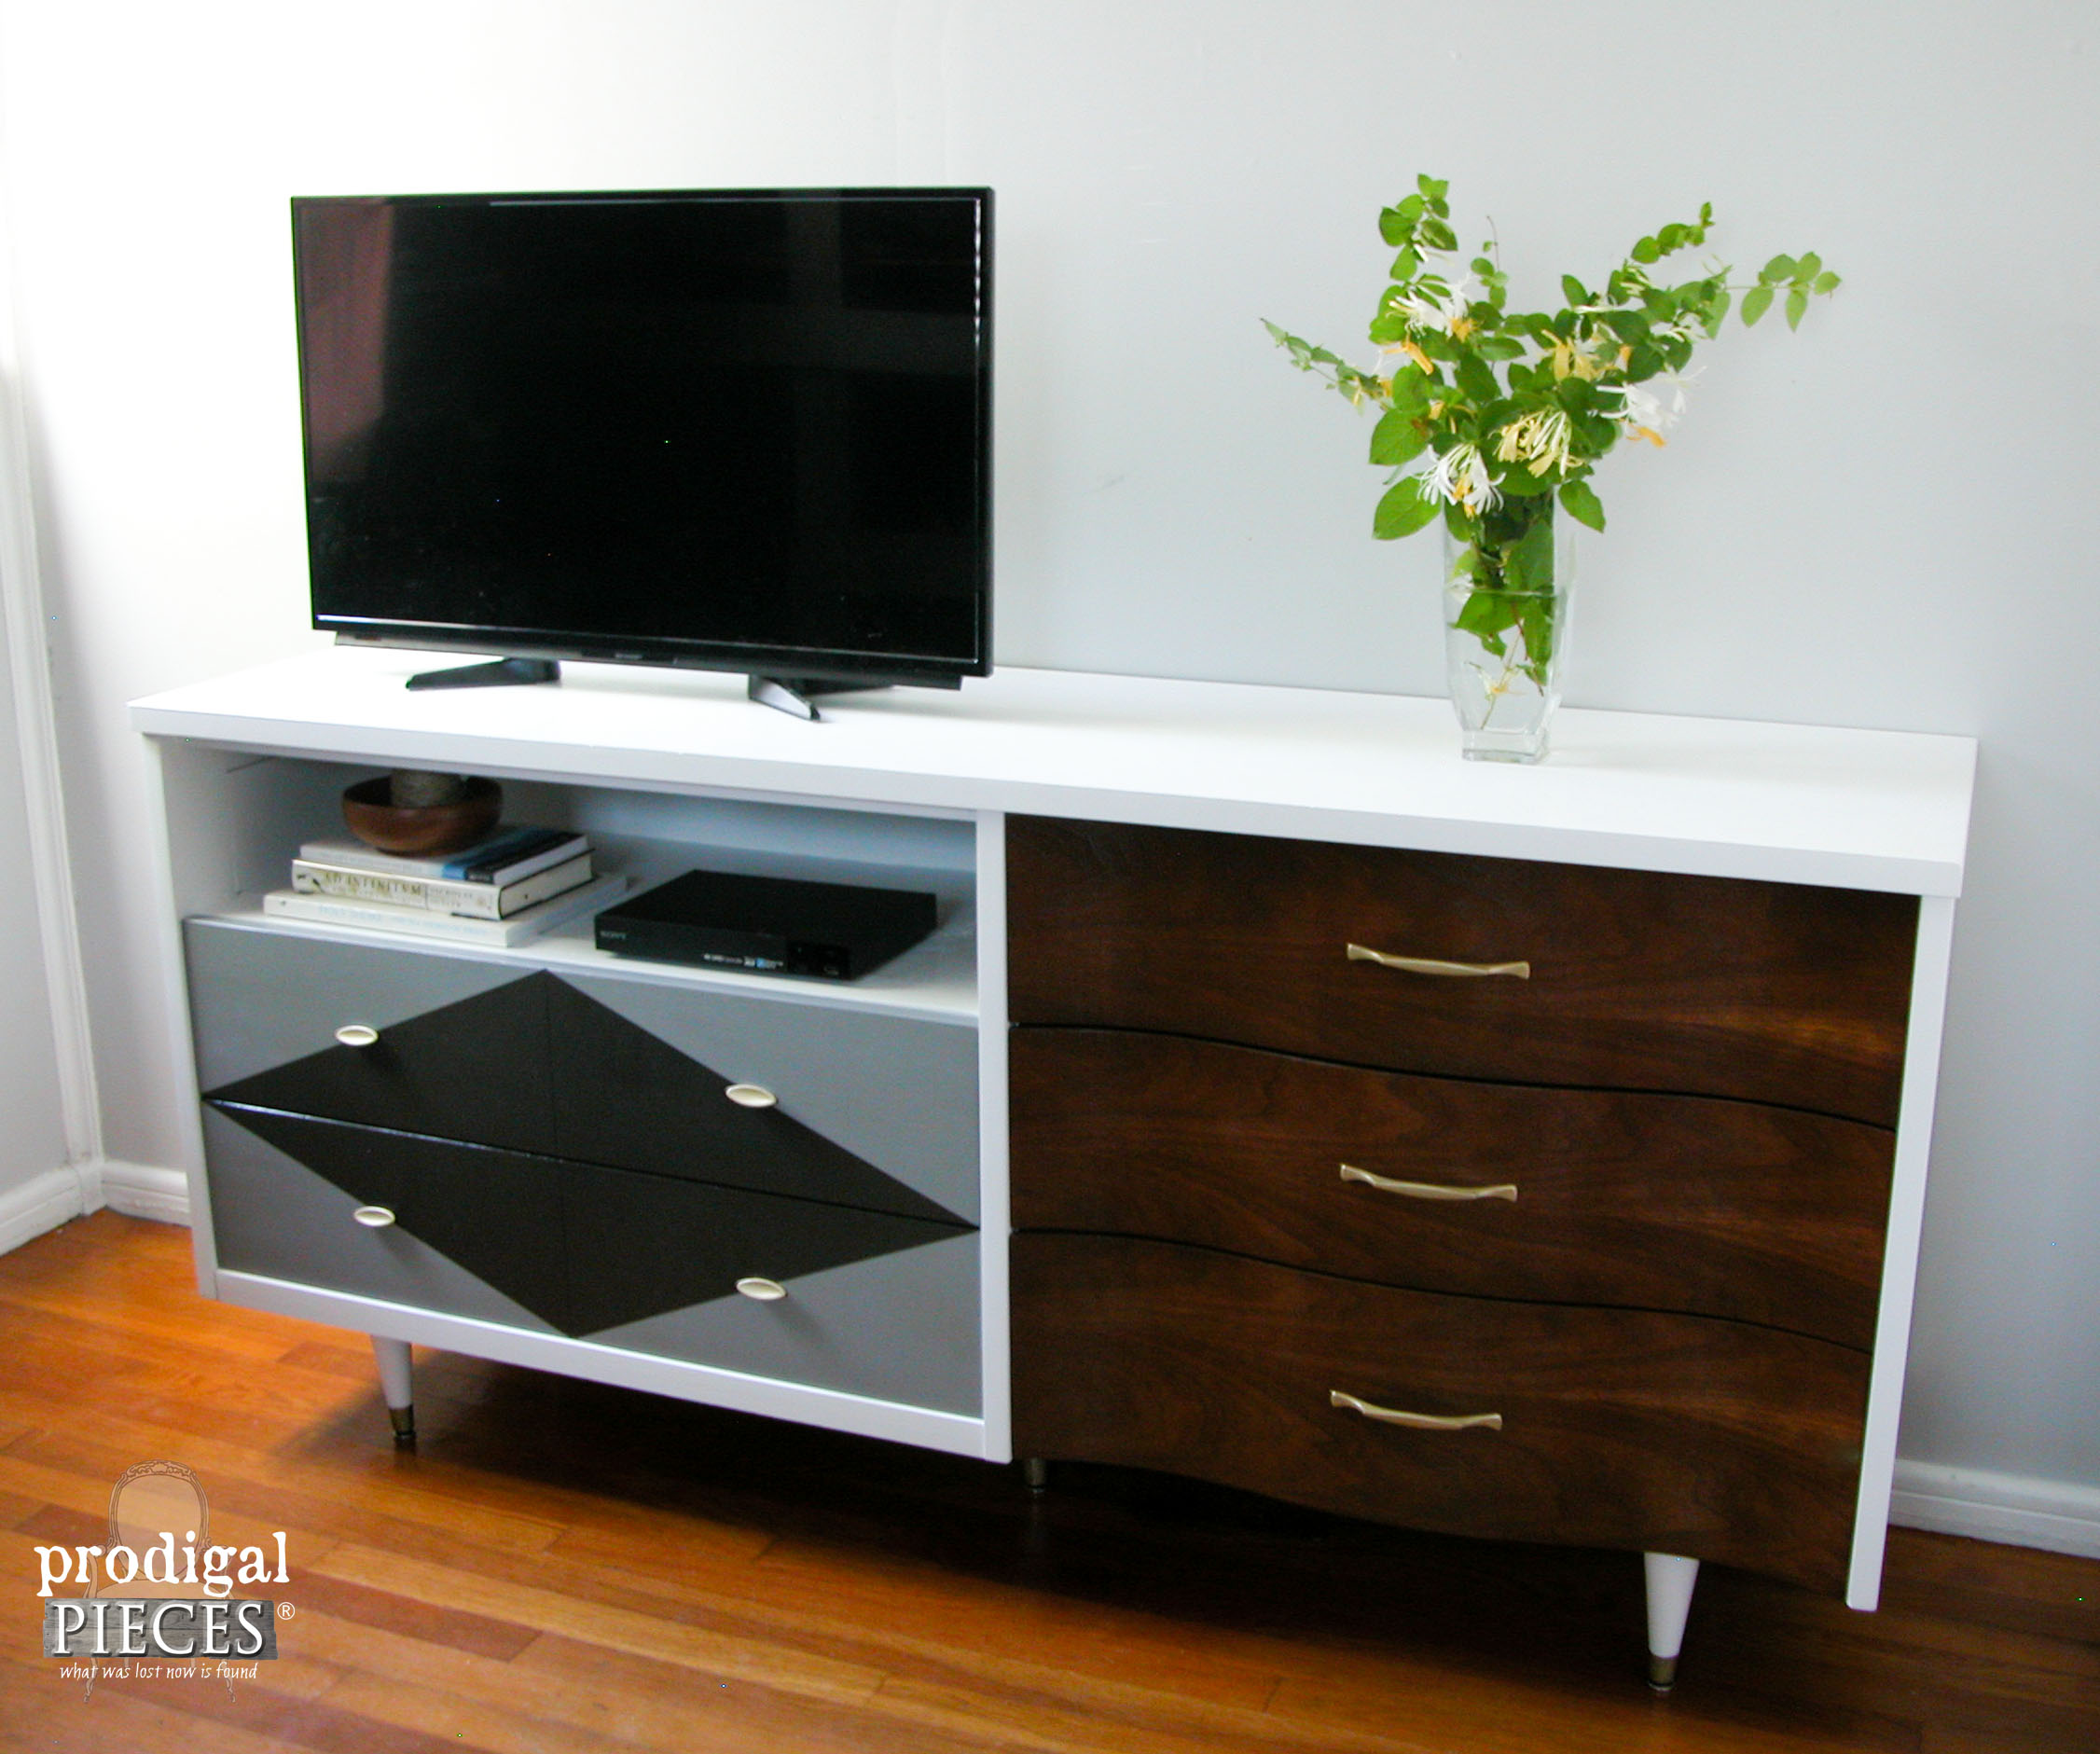 Modern Style Entertainment Console from Mid Century Credenza found Curbside by Prodigal Pieces | www.prodigalpieces.com